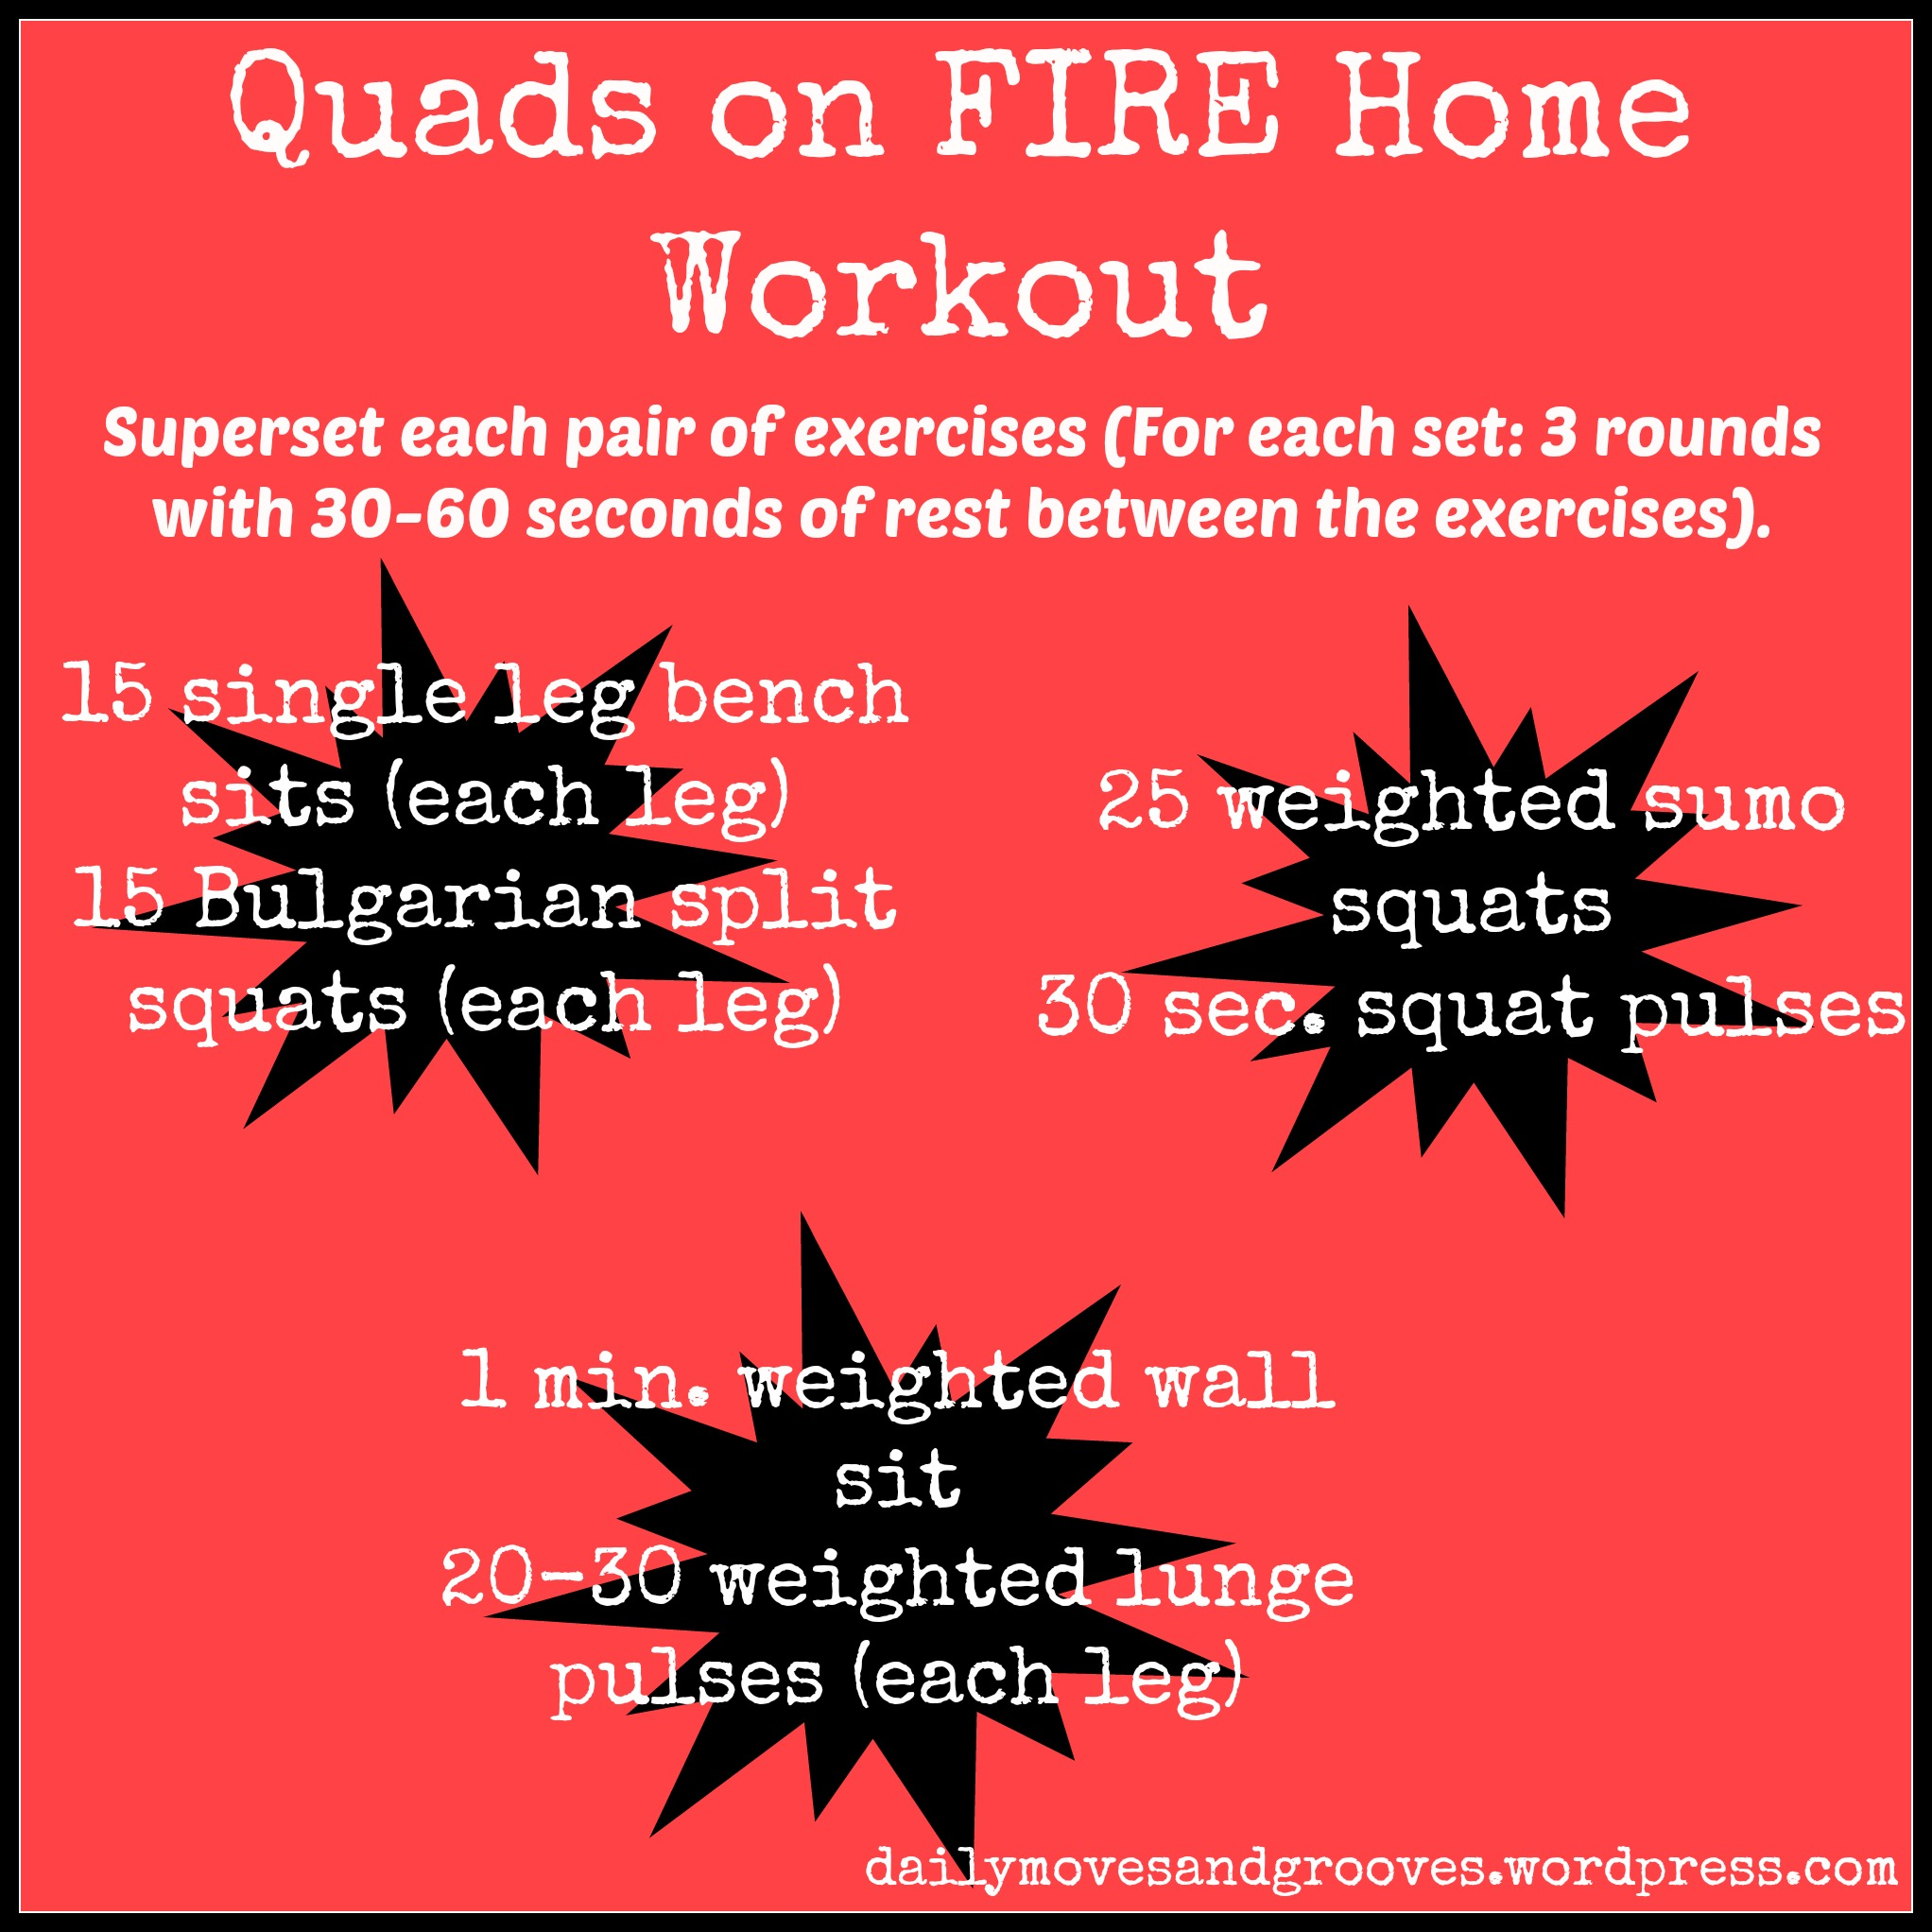 Quads on fire home workout video daily moves and grooves